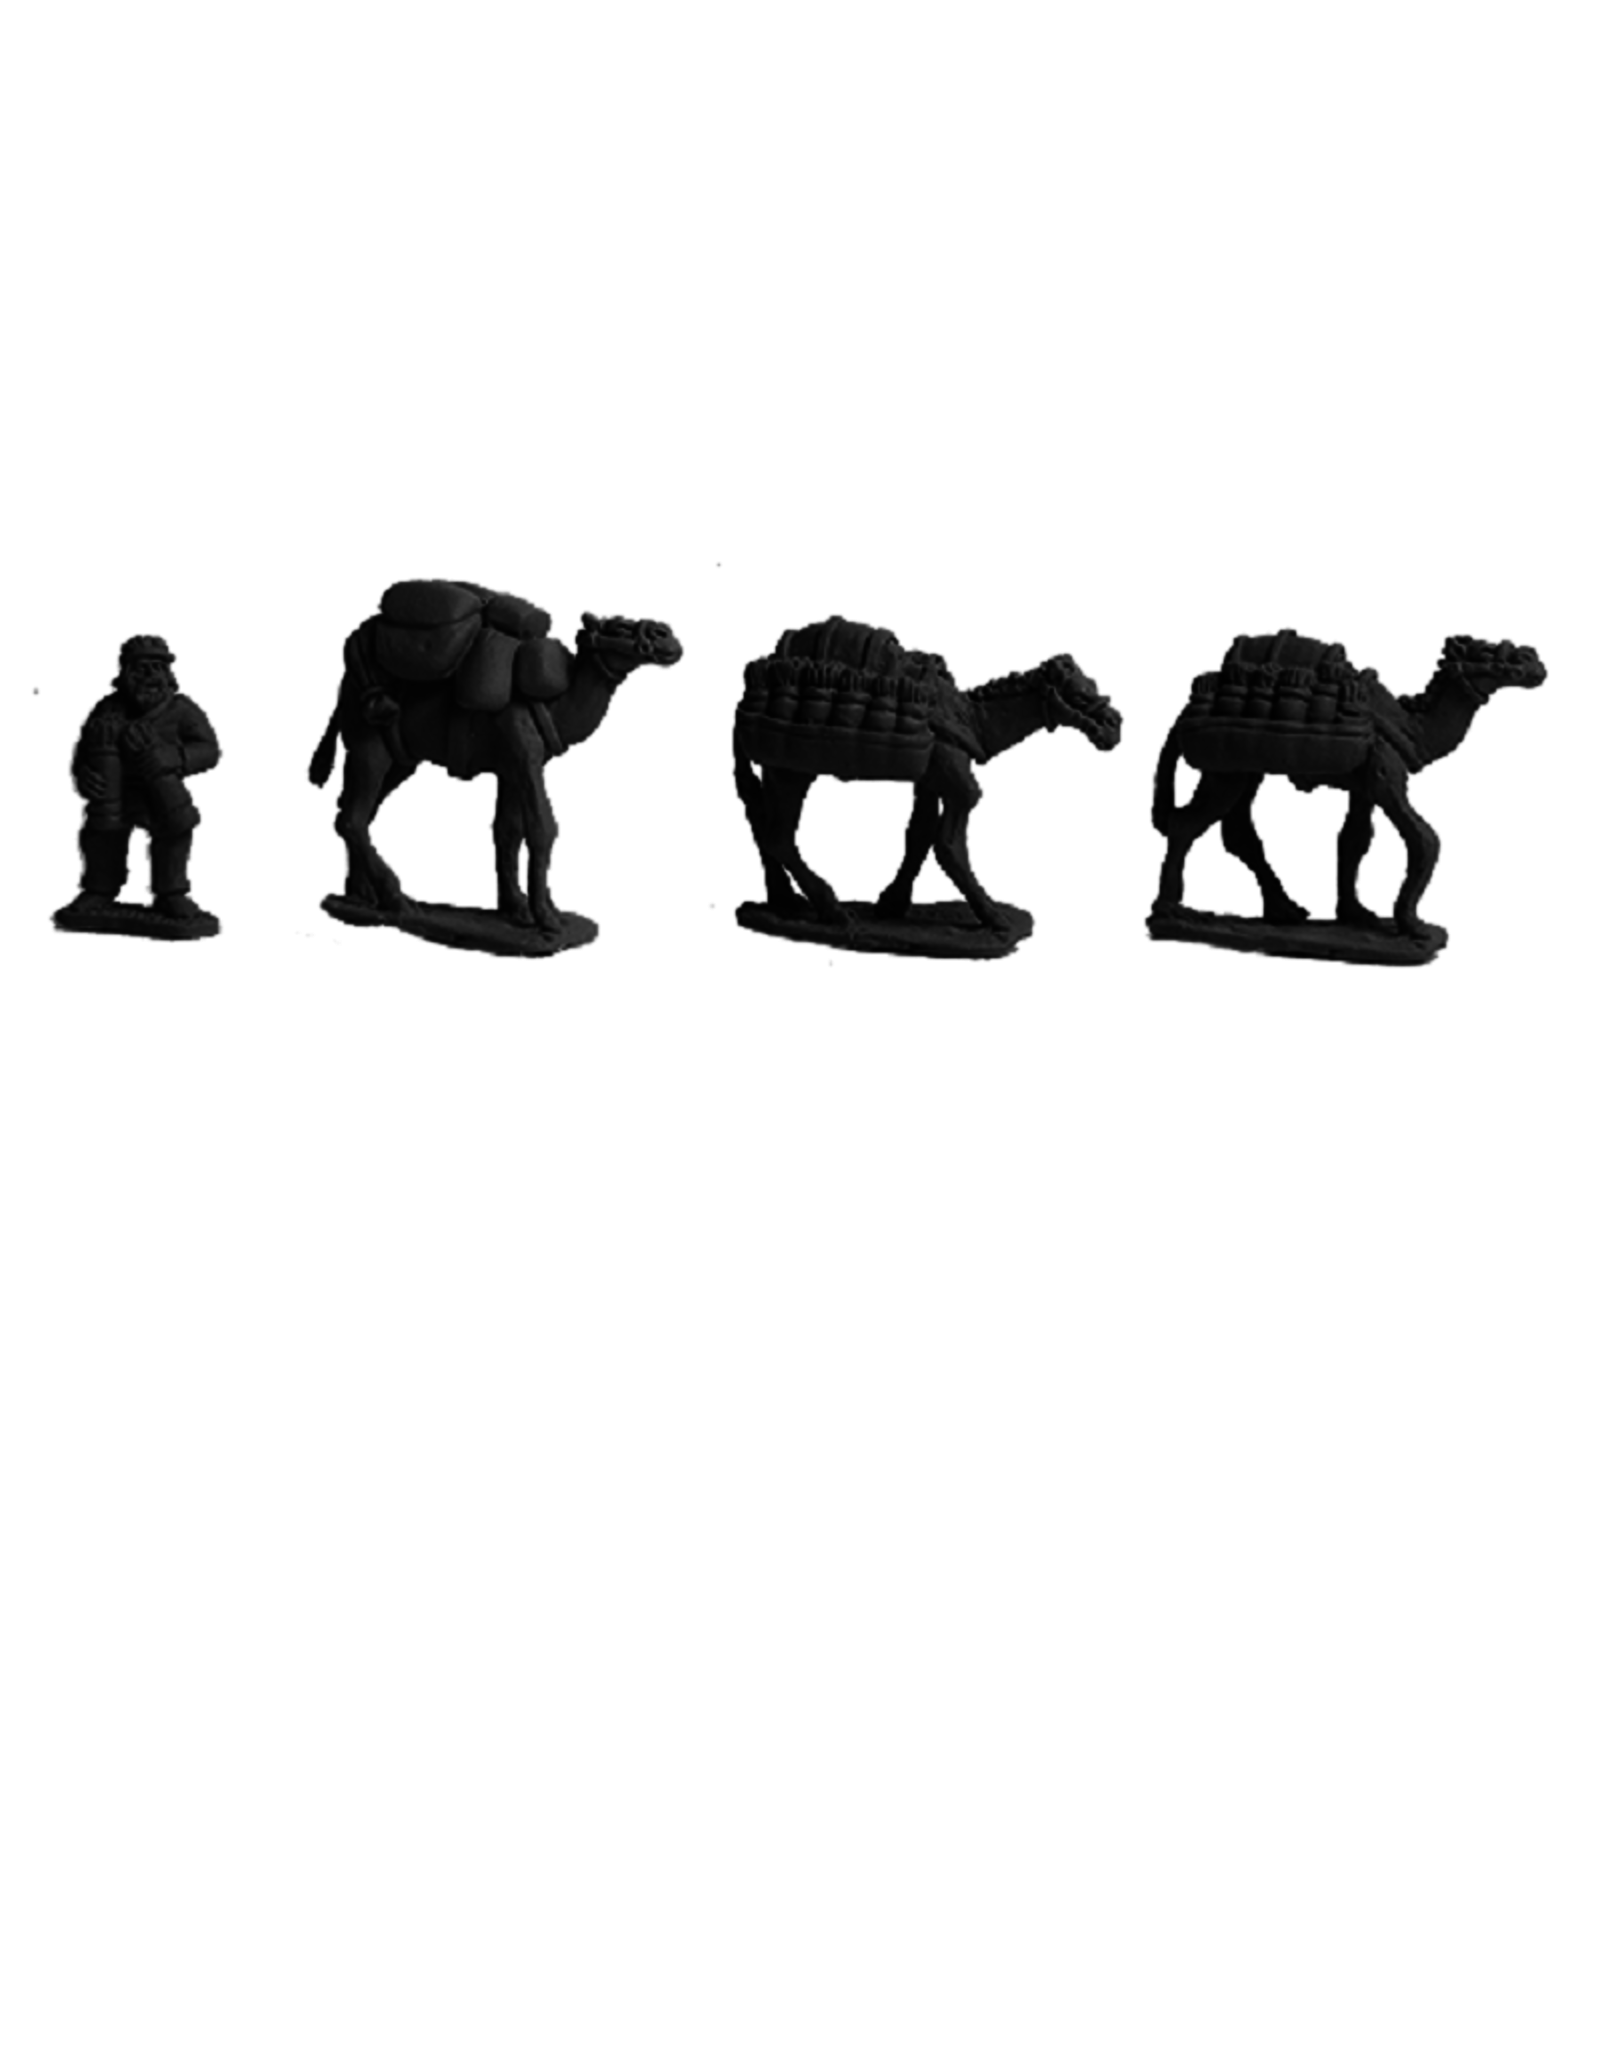 Xyston ANC20282 - Parthian Baggage Camels